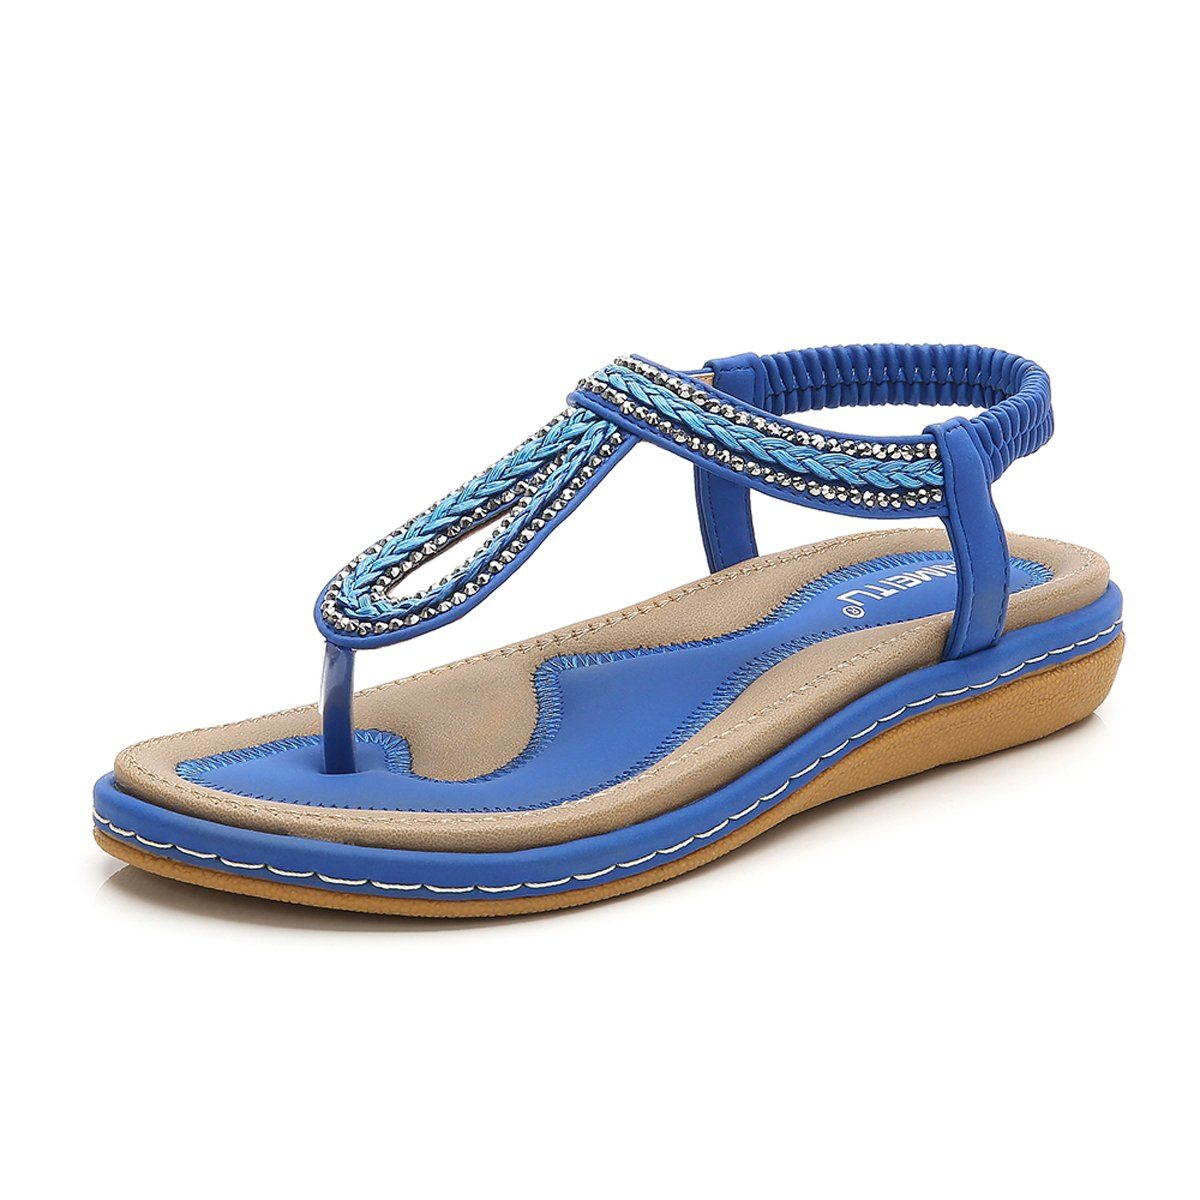 6cbe588b9e5 UfunUshime Women s Rhinestone Summer Flat Sandals Bling Bohemian T-Strap  Soft Flip Flops for Women   It is great having you for having seen our  picture.